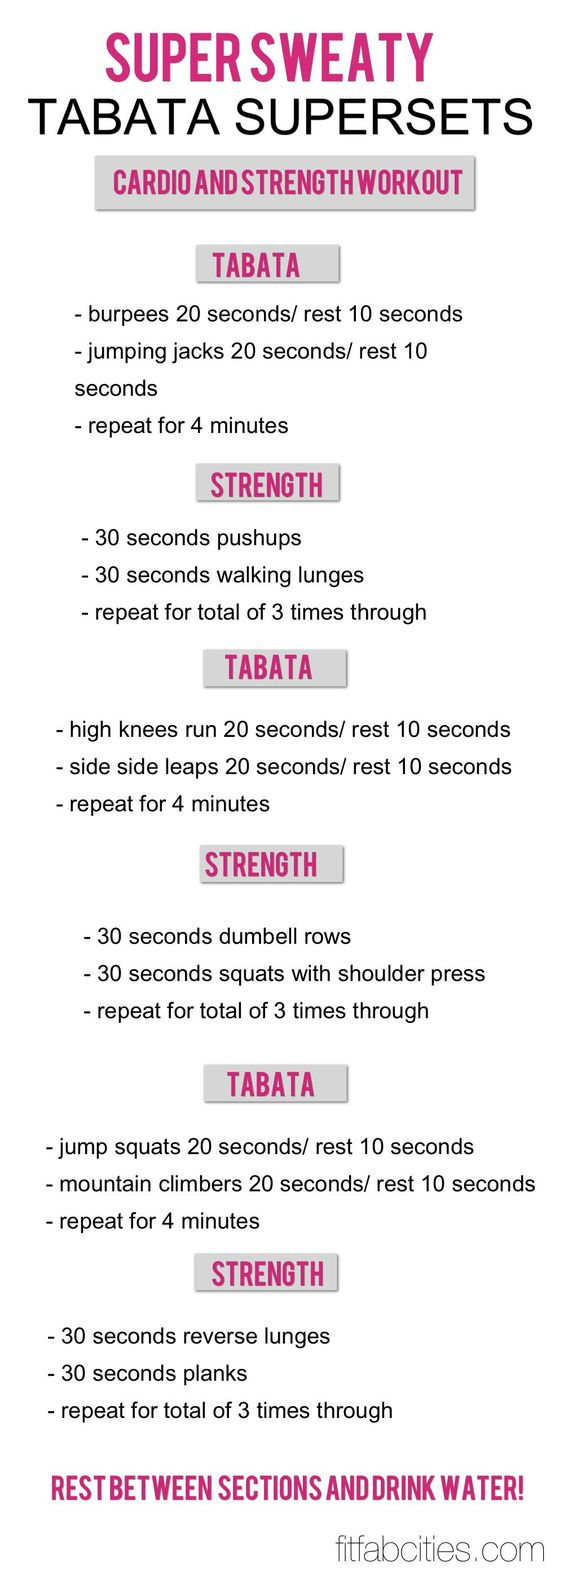 Tabata super-set workouts. (What is Tabata? Tabata interval training is an intense alternative to long cardiovascular sessions. Developed by Dr. Izumi Tabata and used to train the Japanese Olympic speed skating team. Get done in 4 minutes what would normally take you 28+ minutes. The key? Work AS HARD AS YOU POSSIBLY CAN in those 4 minutes!)